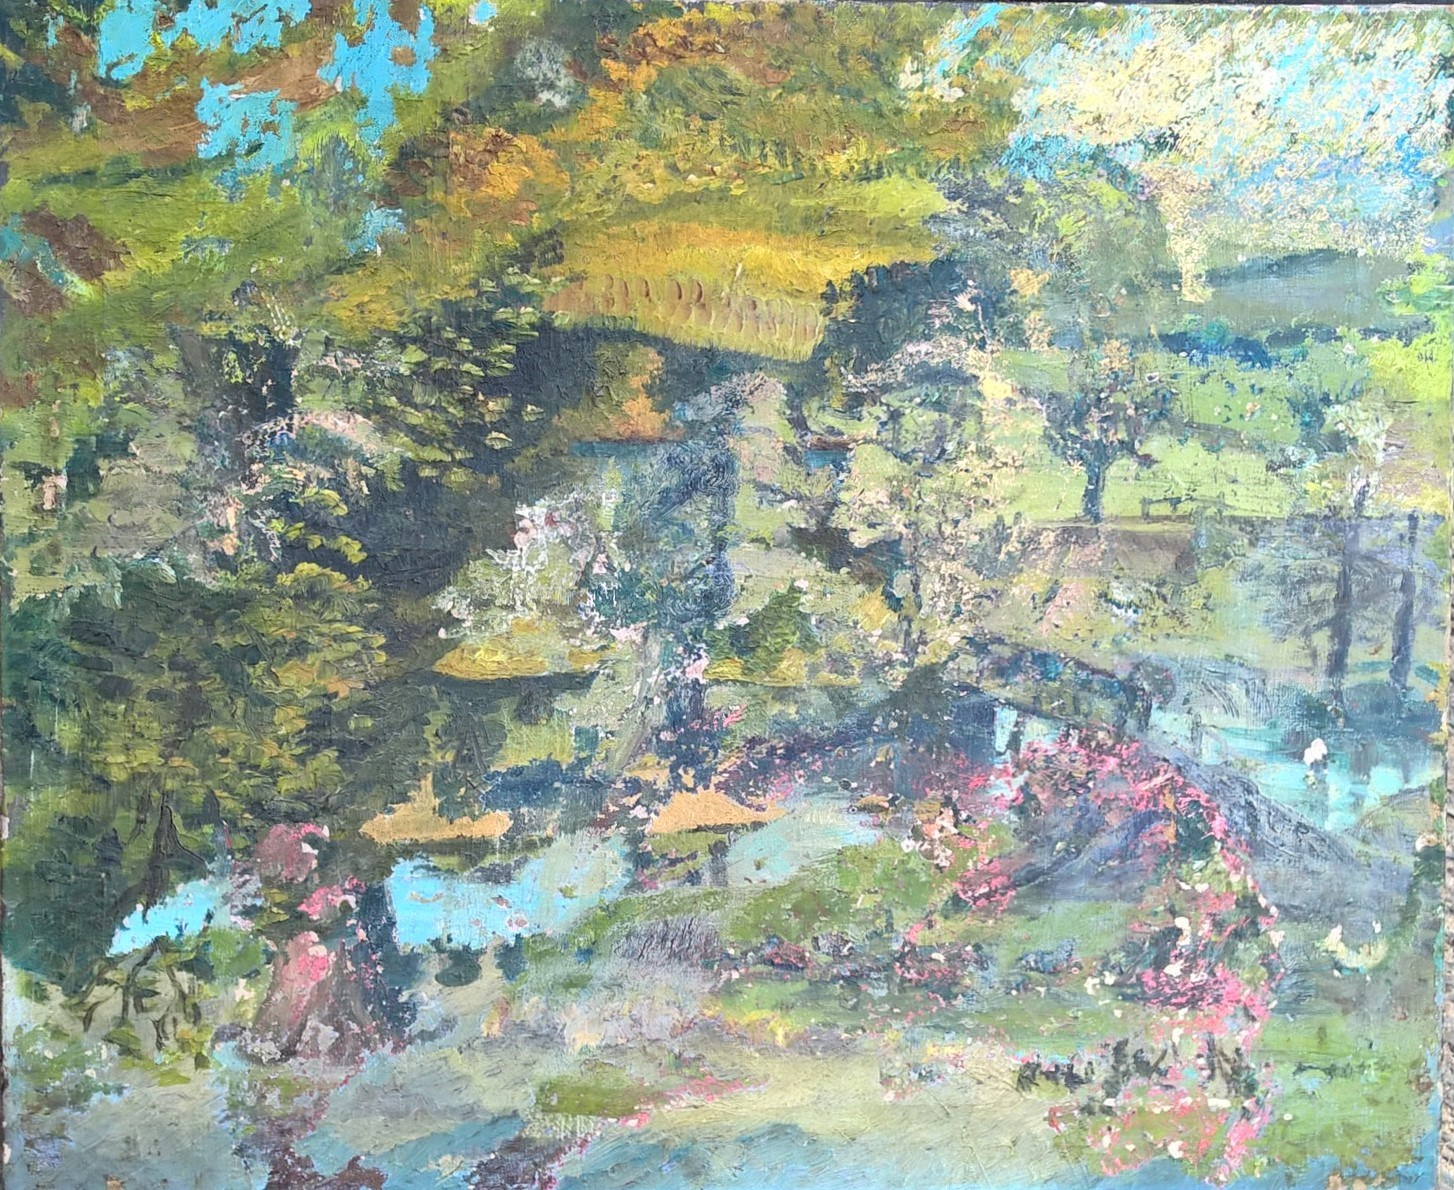 The layers of Tom Wright's painting were removed to reveal the Lucian Freud landscape beneath